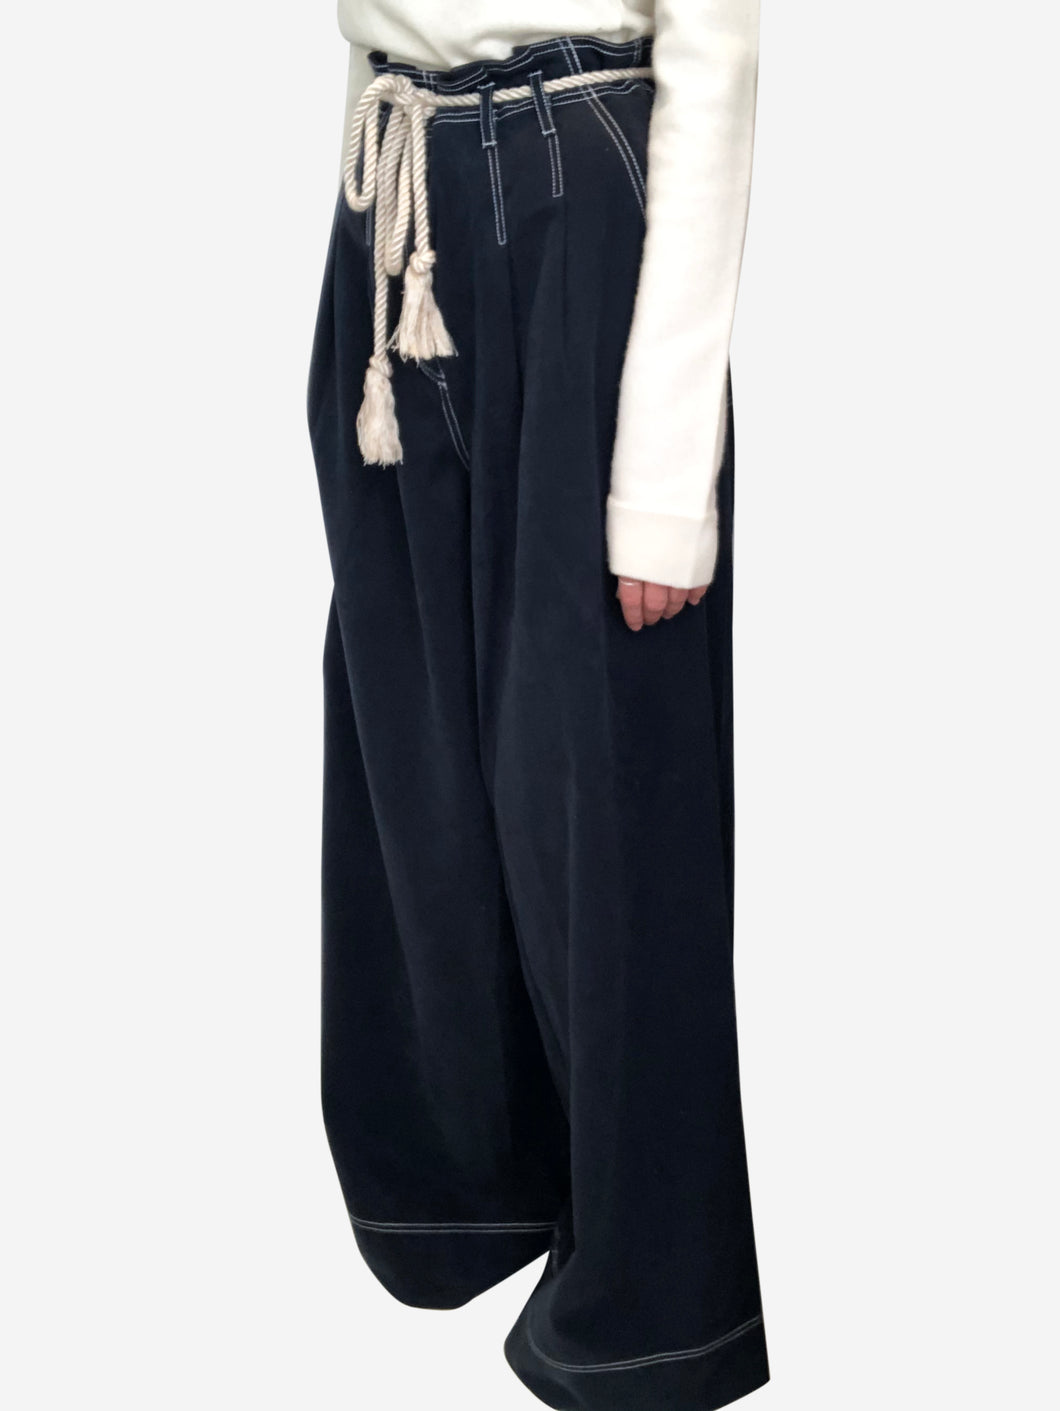 Navy wide leg trousers with rope belt - size UK 8